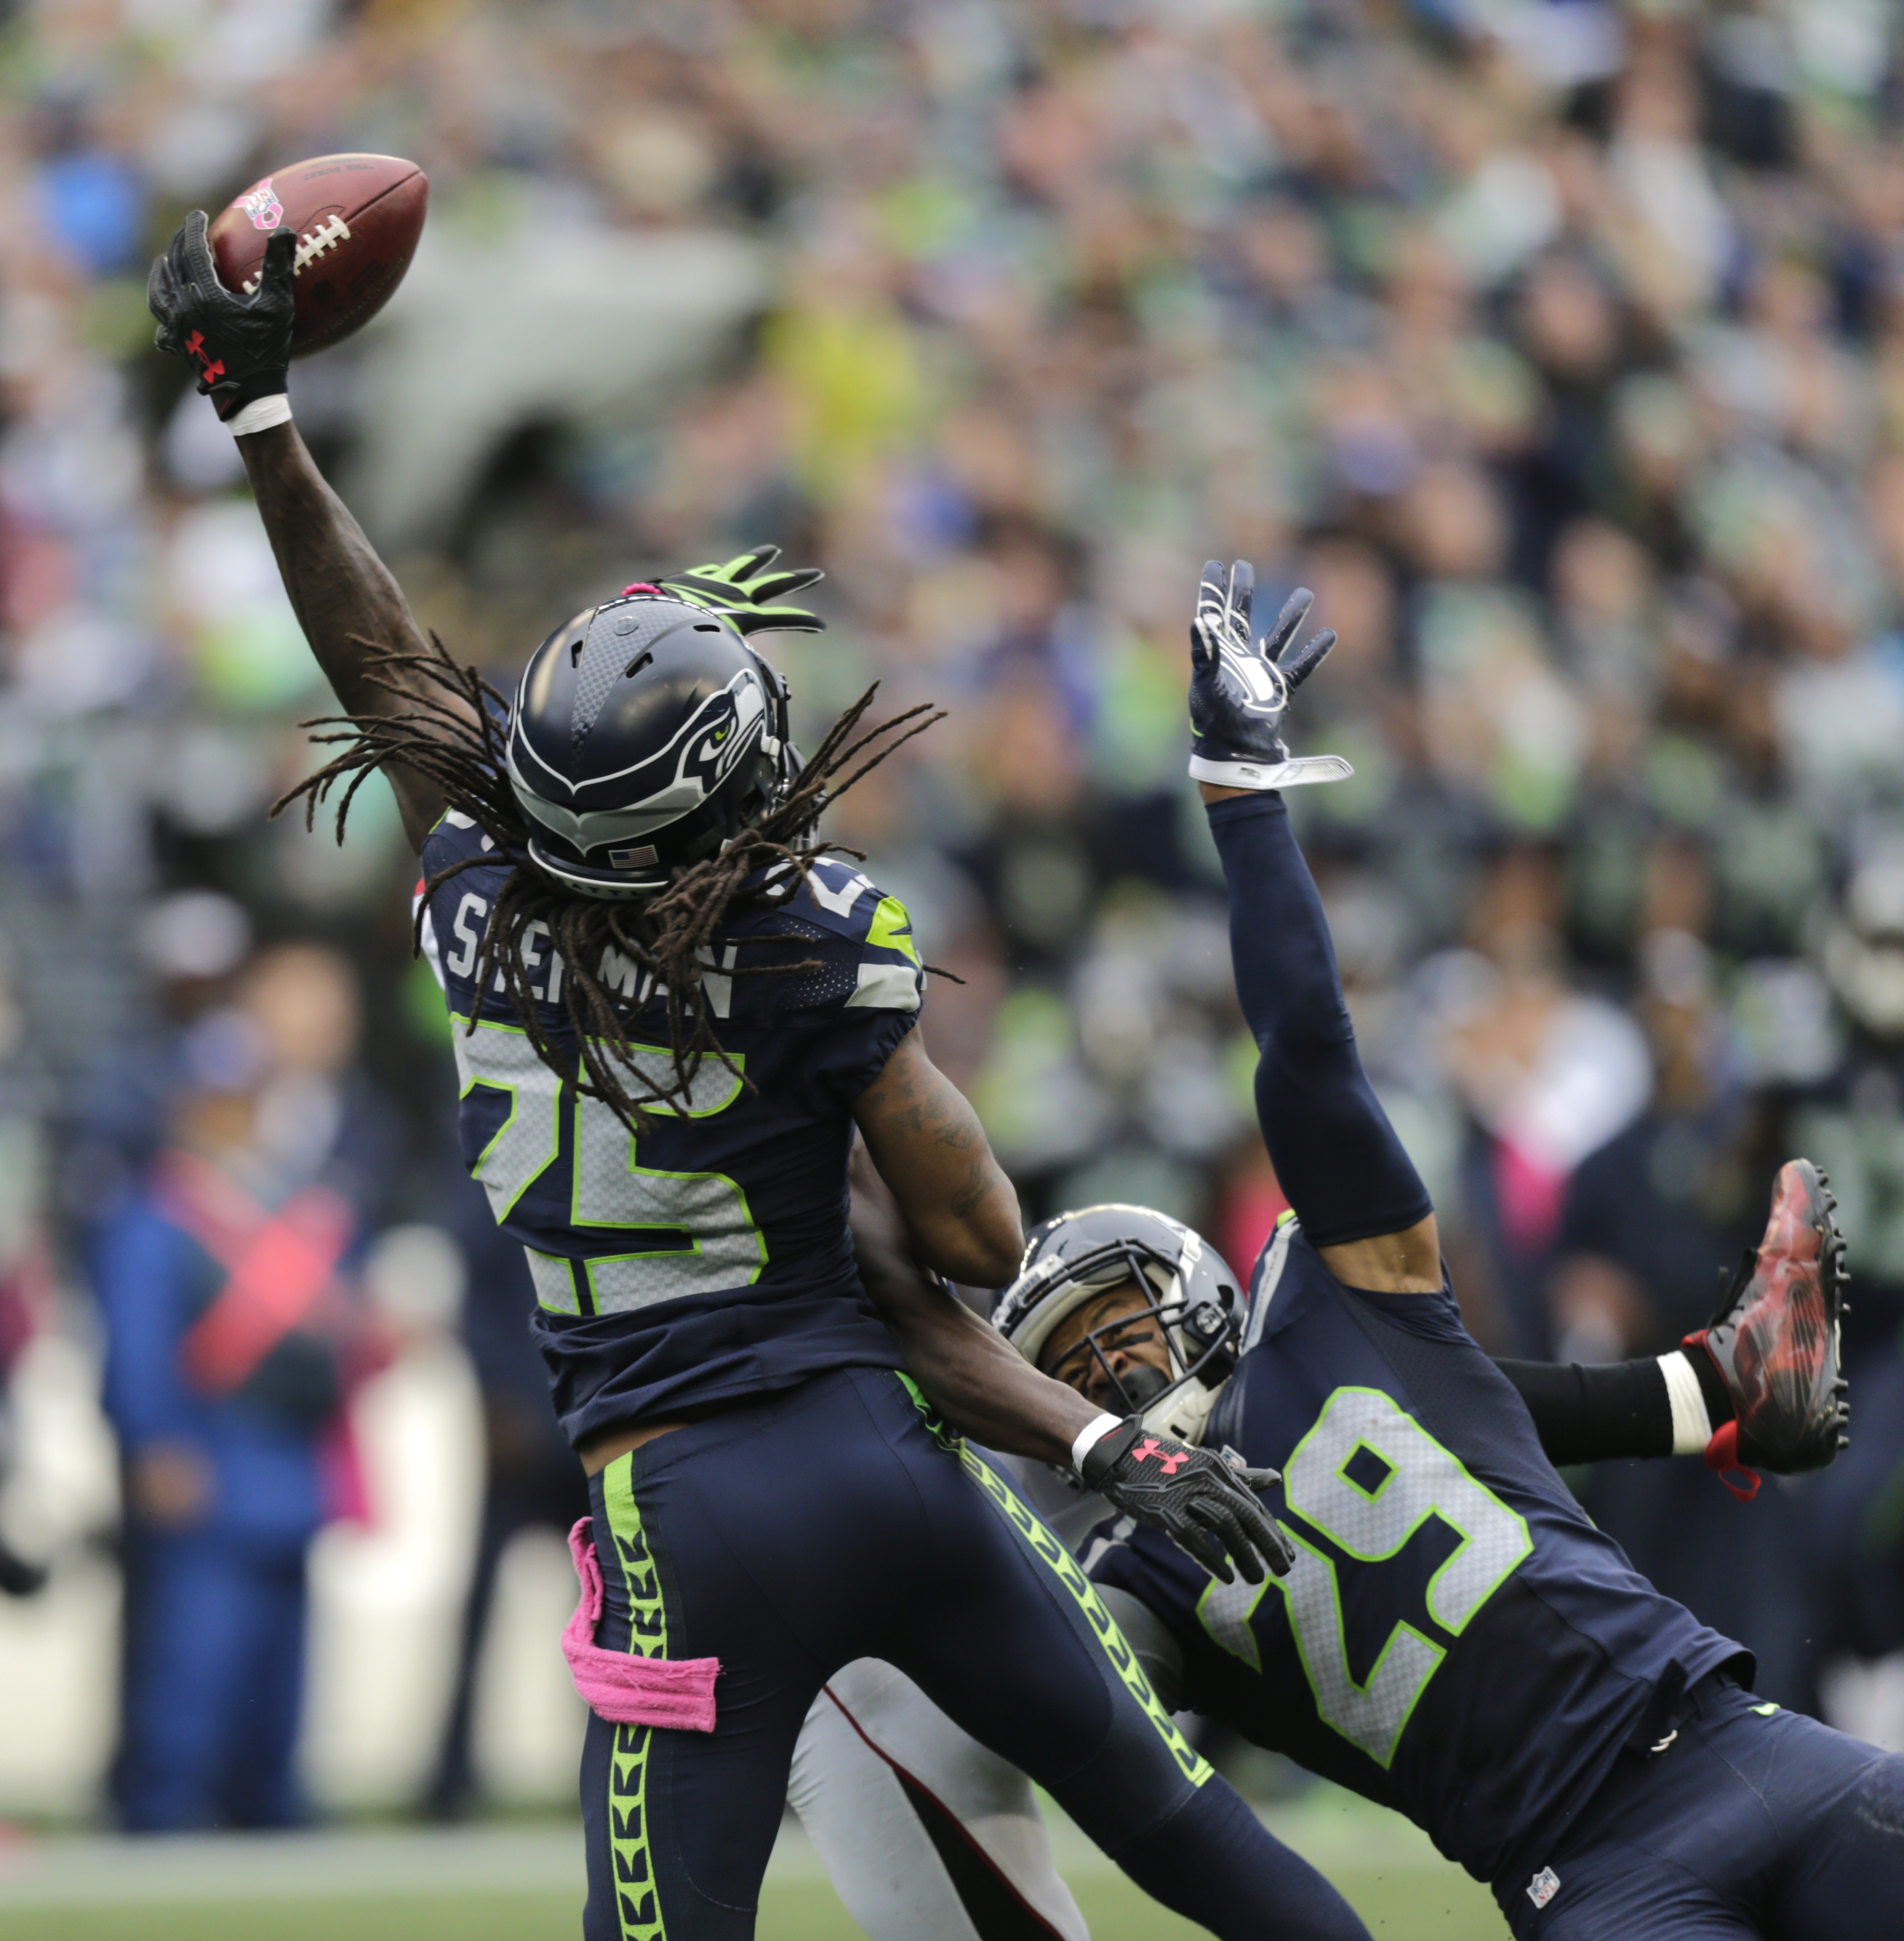 Seattle Seahawks cornerback Richard Sherman (25) and Earl Thomas (29) break up a pass intended for Atlanta Falcons wide receiver Julio Jones (obscured) in the second half of an NFL football game, Sunday, Oct. 16, 2016, in Seattle. The Seahawks defeated th